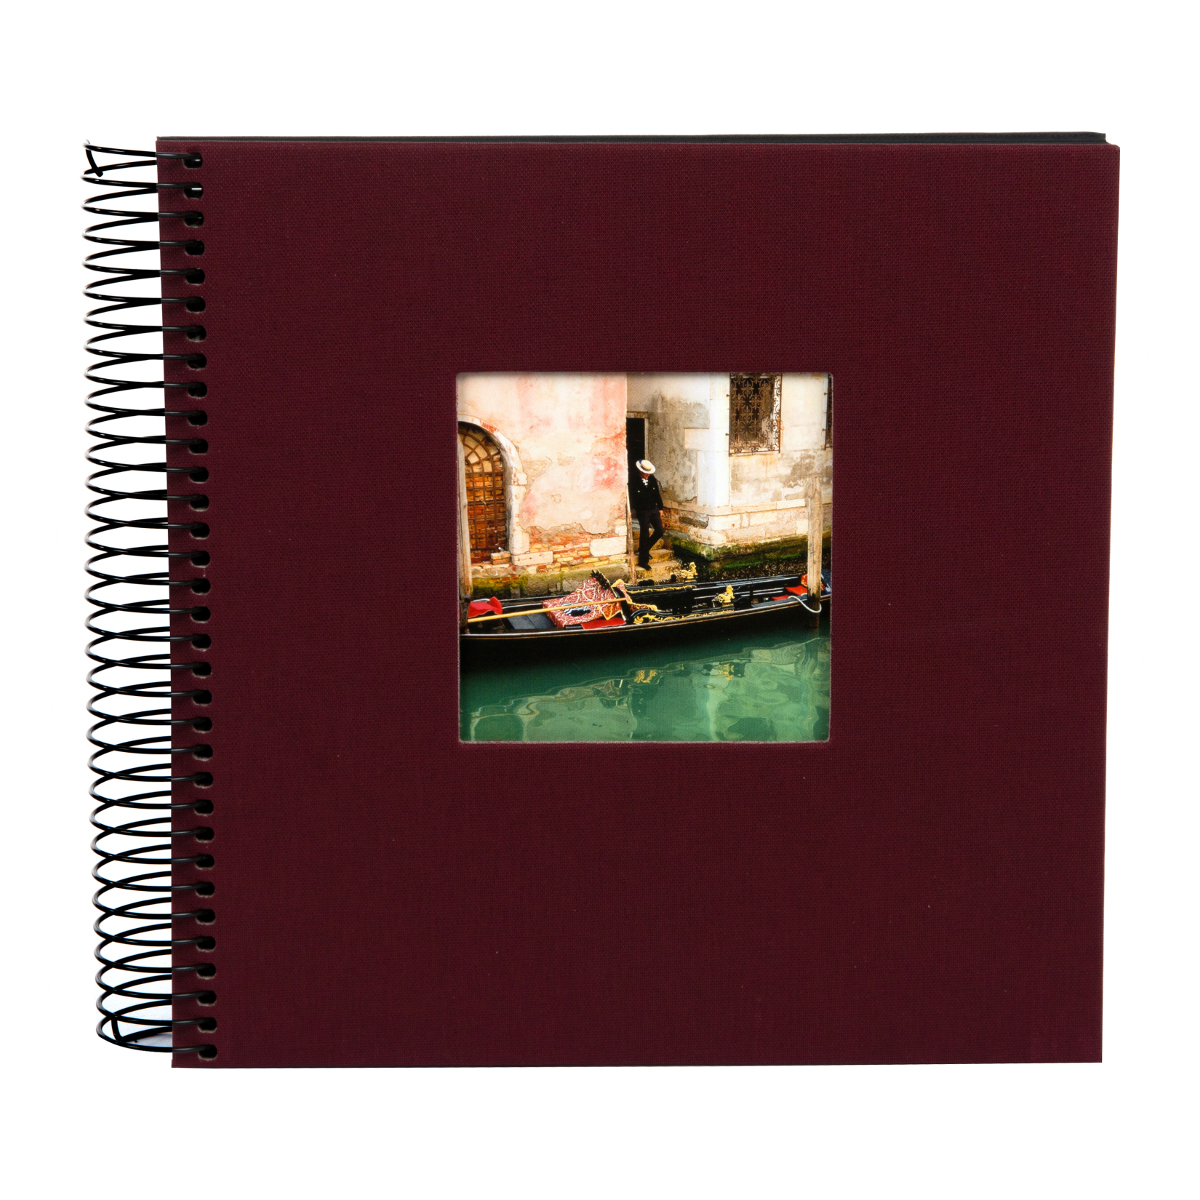 goldbuch Spiralalbum Bella Vista bordeaux mini